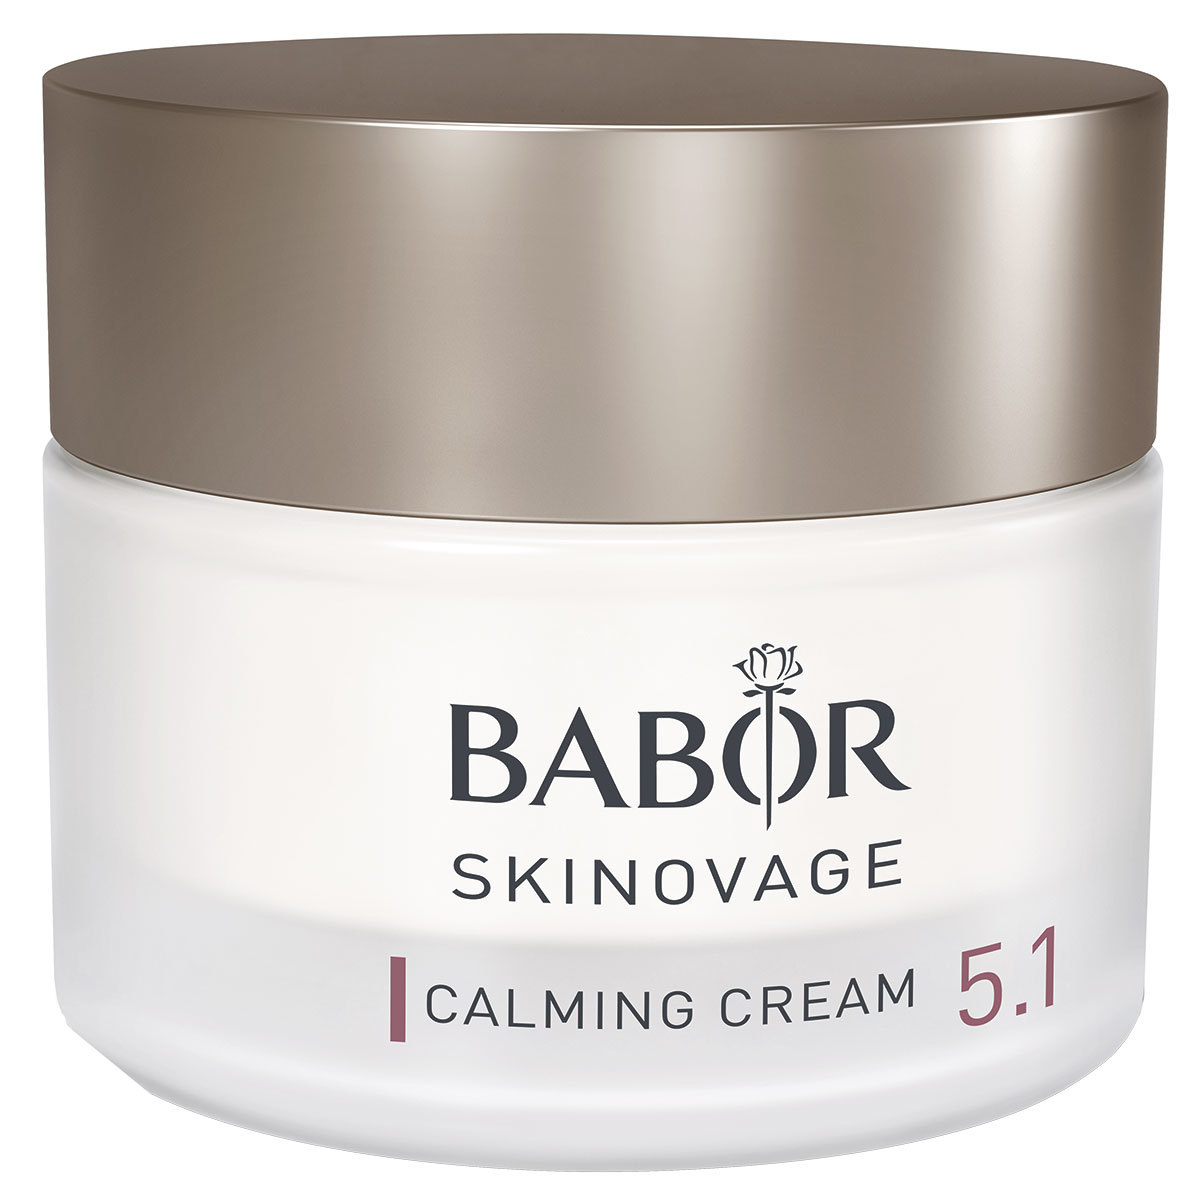 Крем Babor Skinovage Calming Cream 5.1 50ml